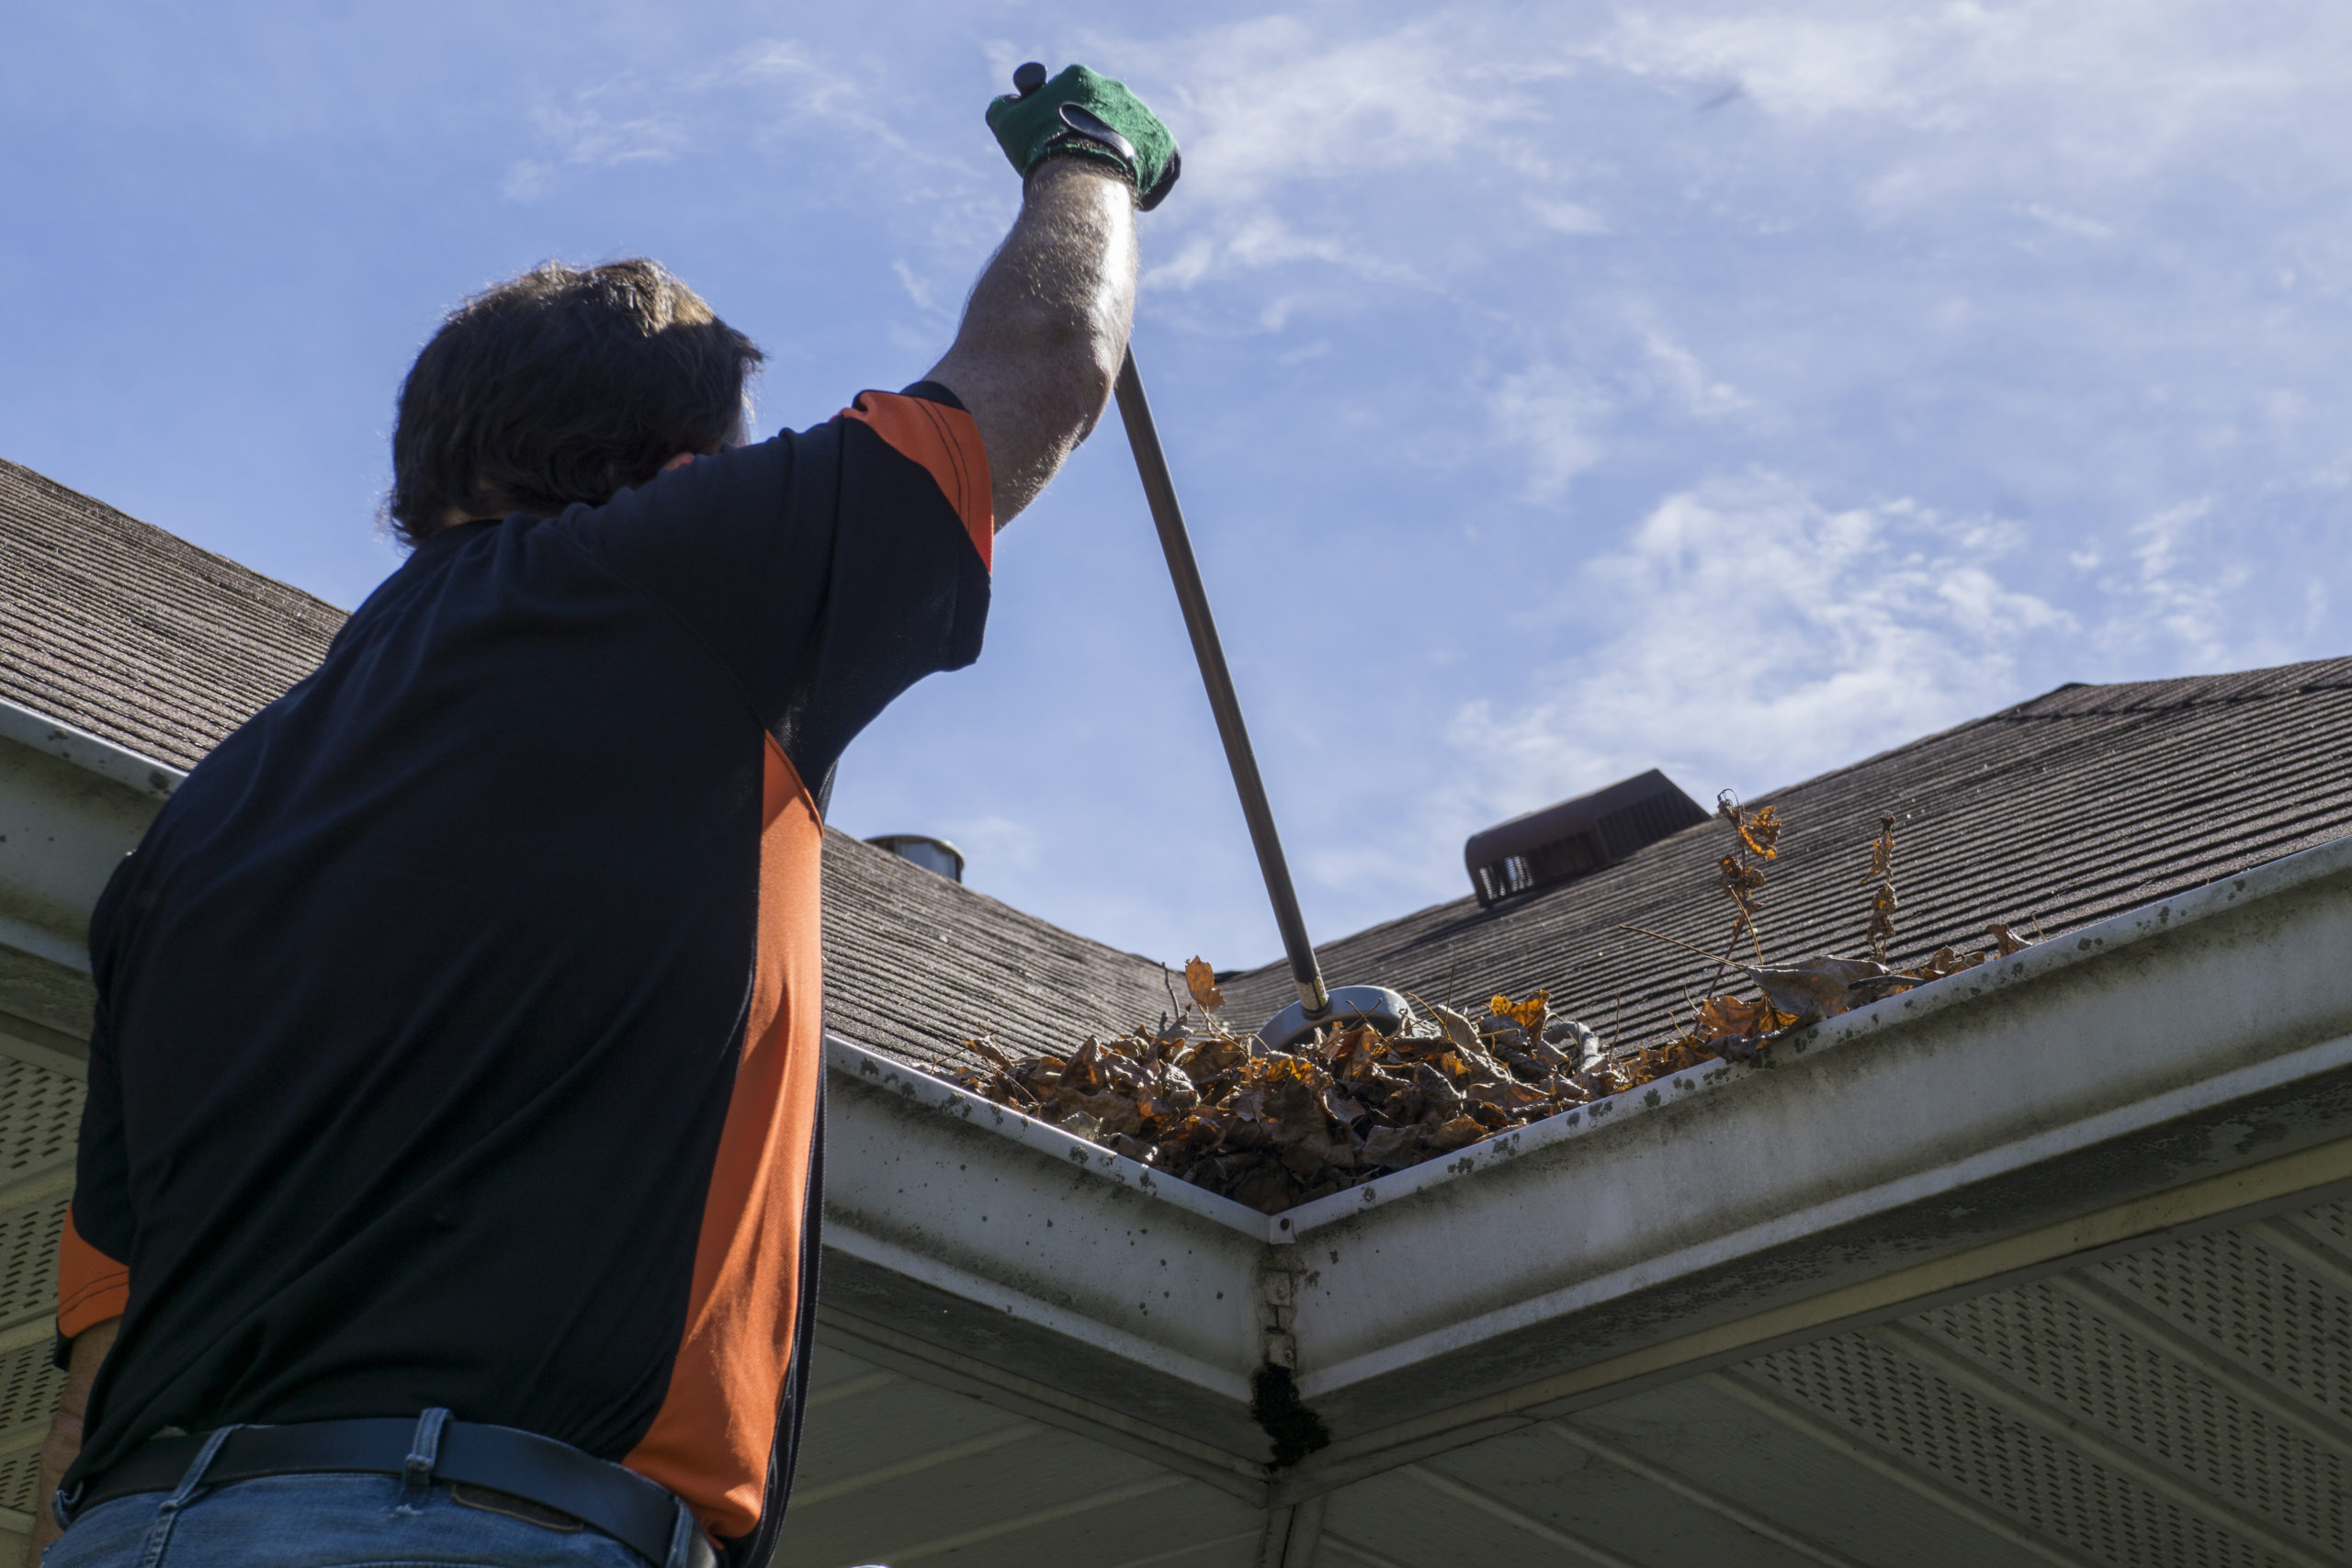 max cleaning leaves out of gutter